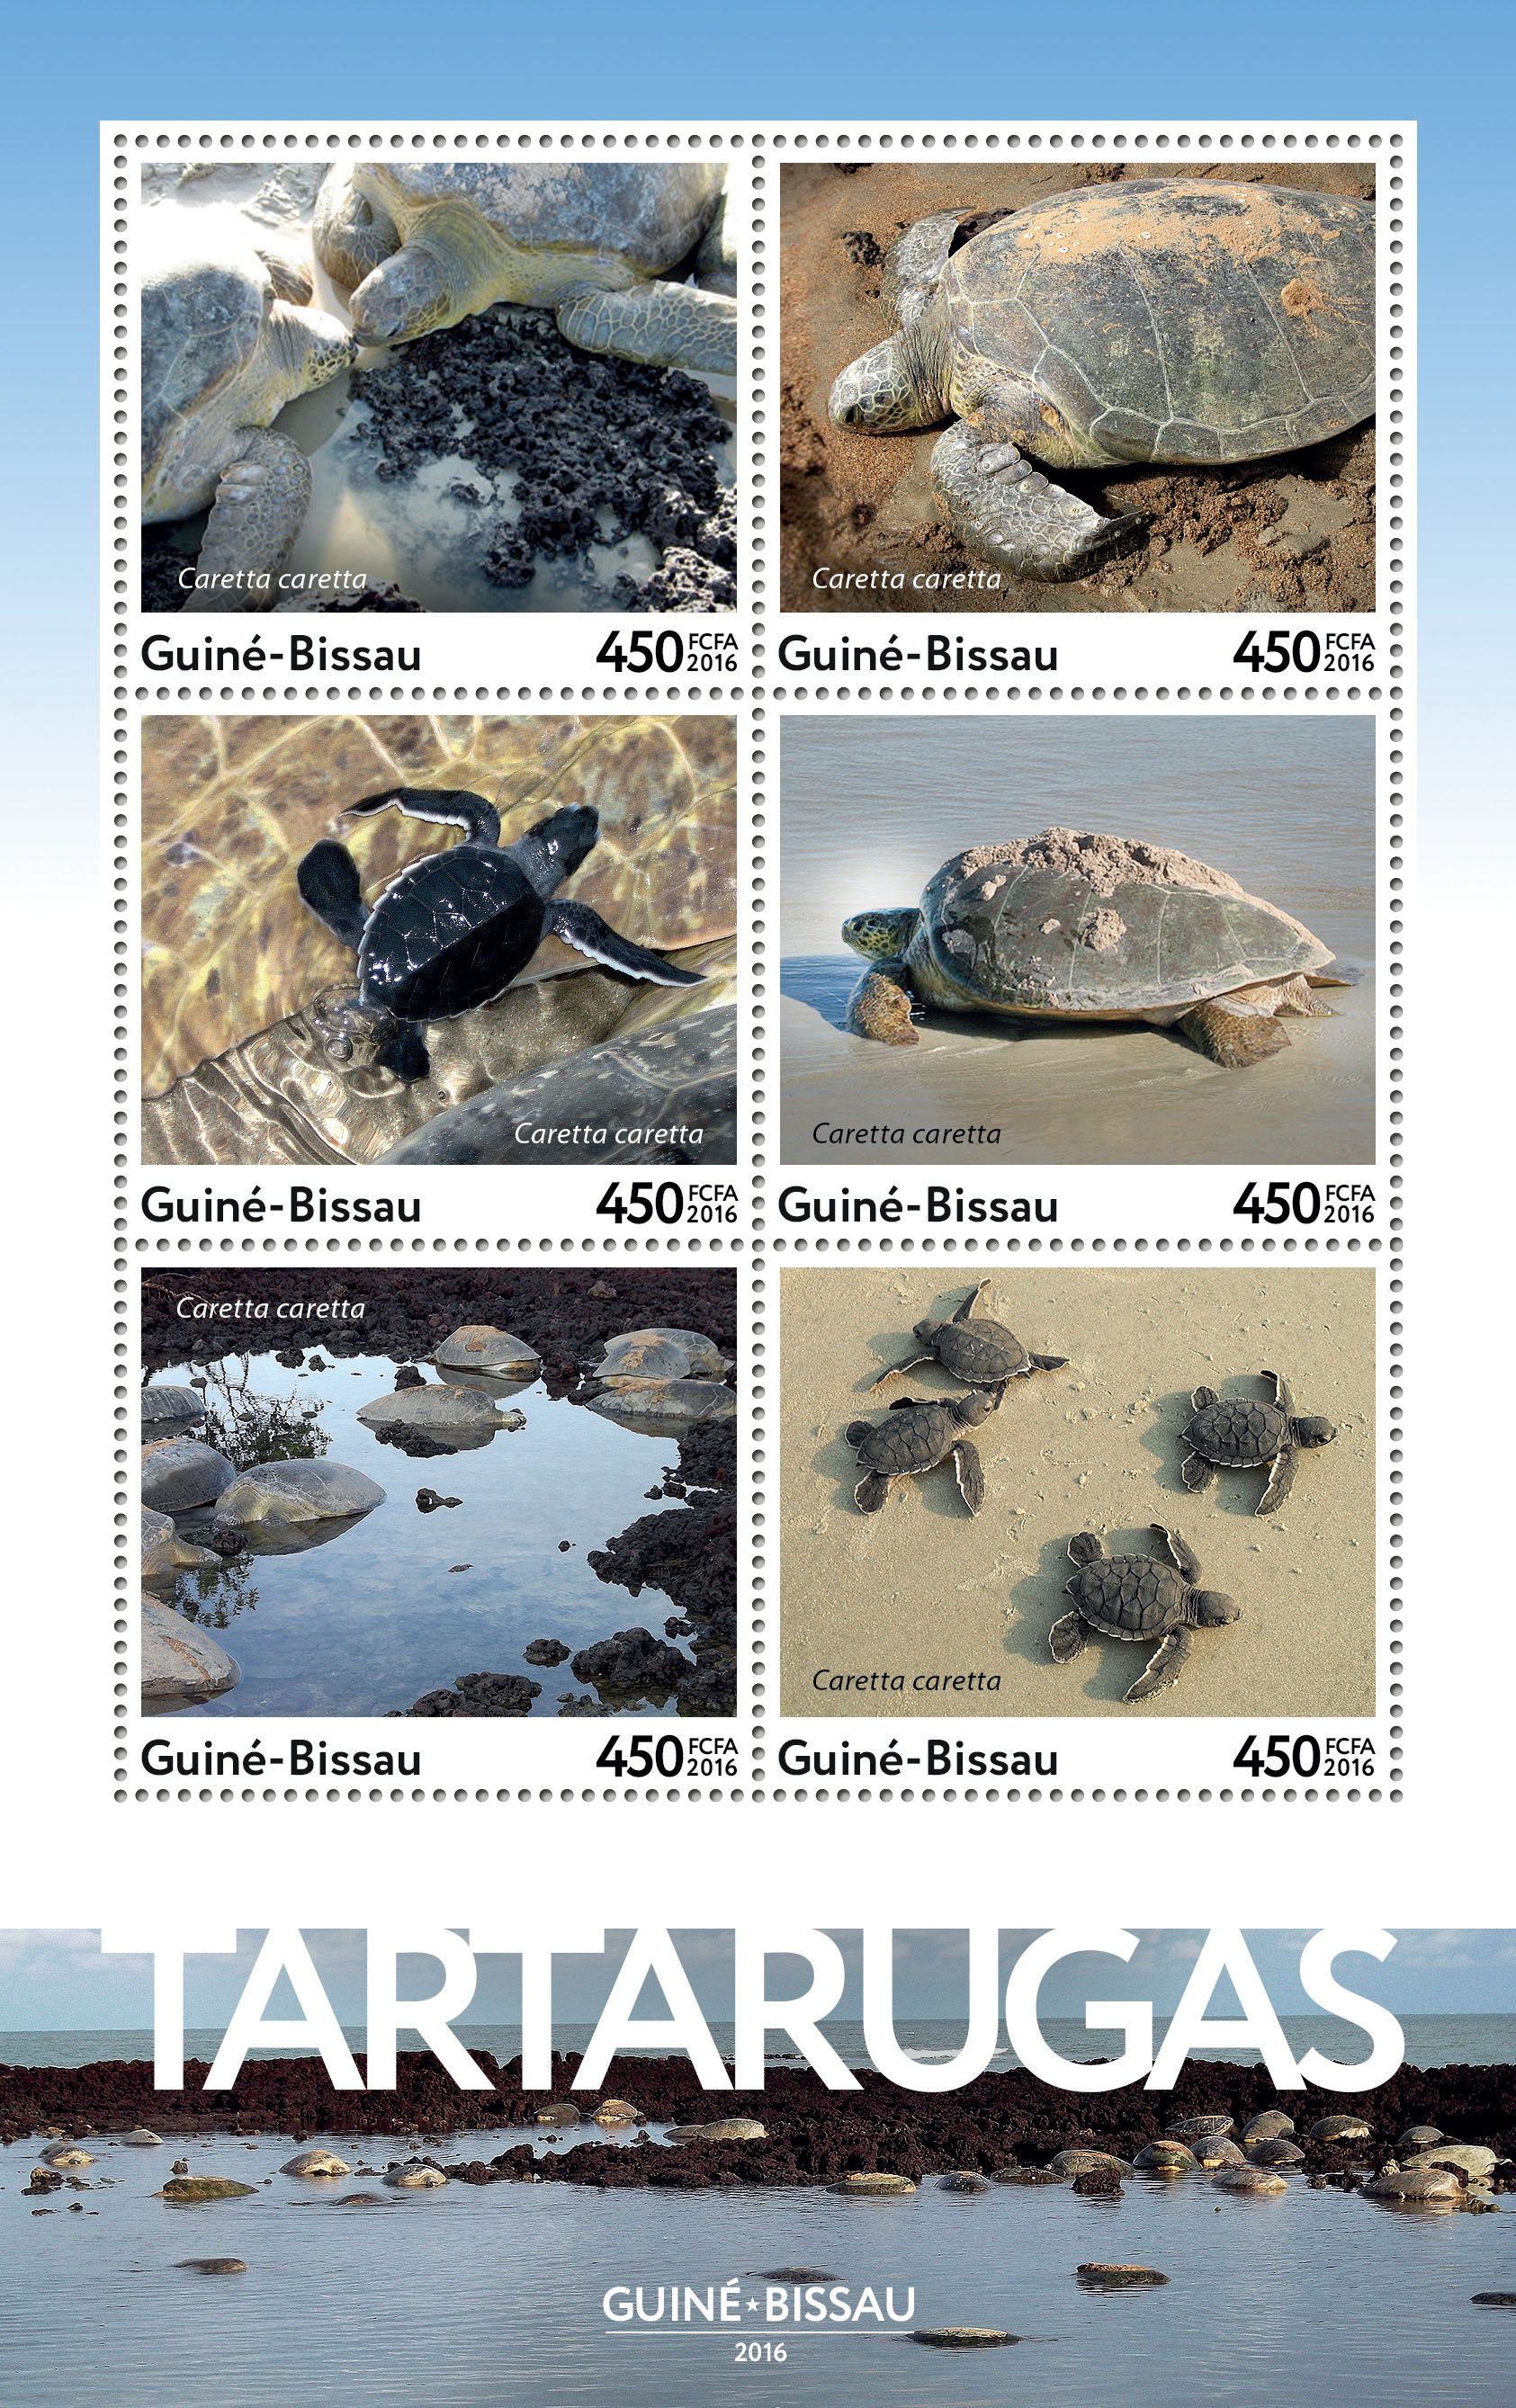 Turtles 6v - Issue of Guinée-Bissau postage stamps